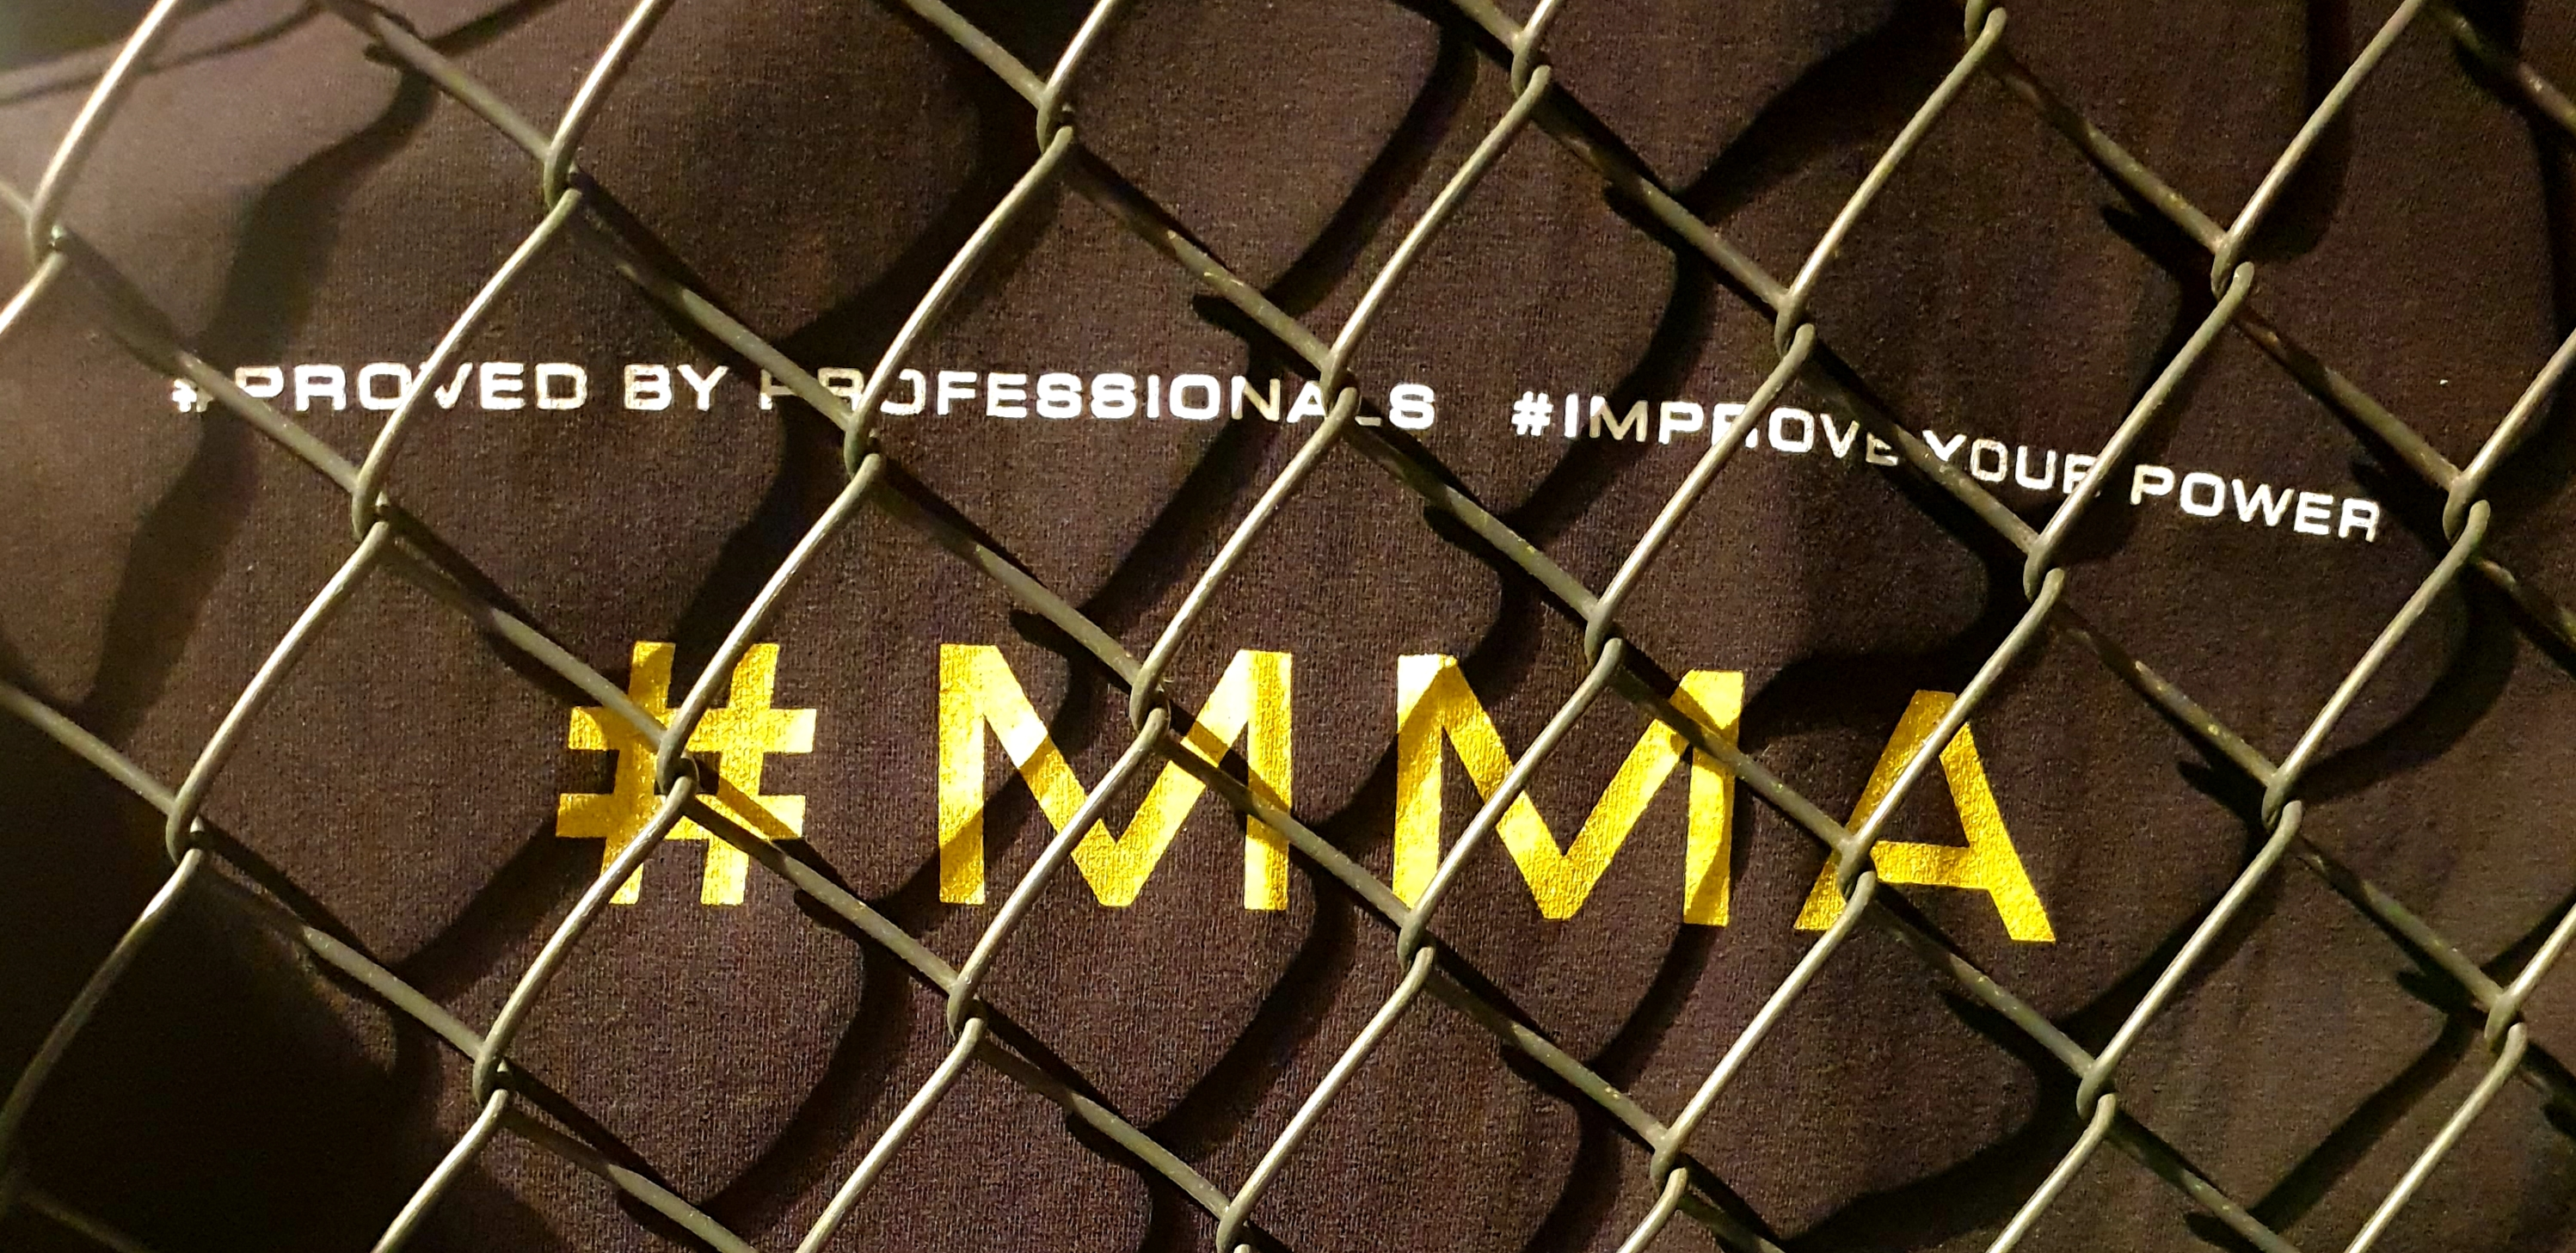 MMA, Mixed Martial Arts, Proved By Professionals, Improve Your Power, FEFLOGX Sportswear, Cage Wall.